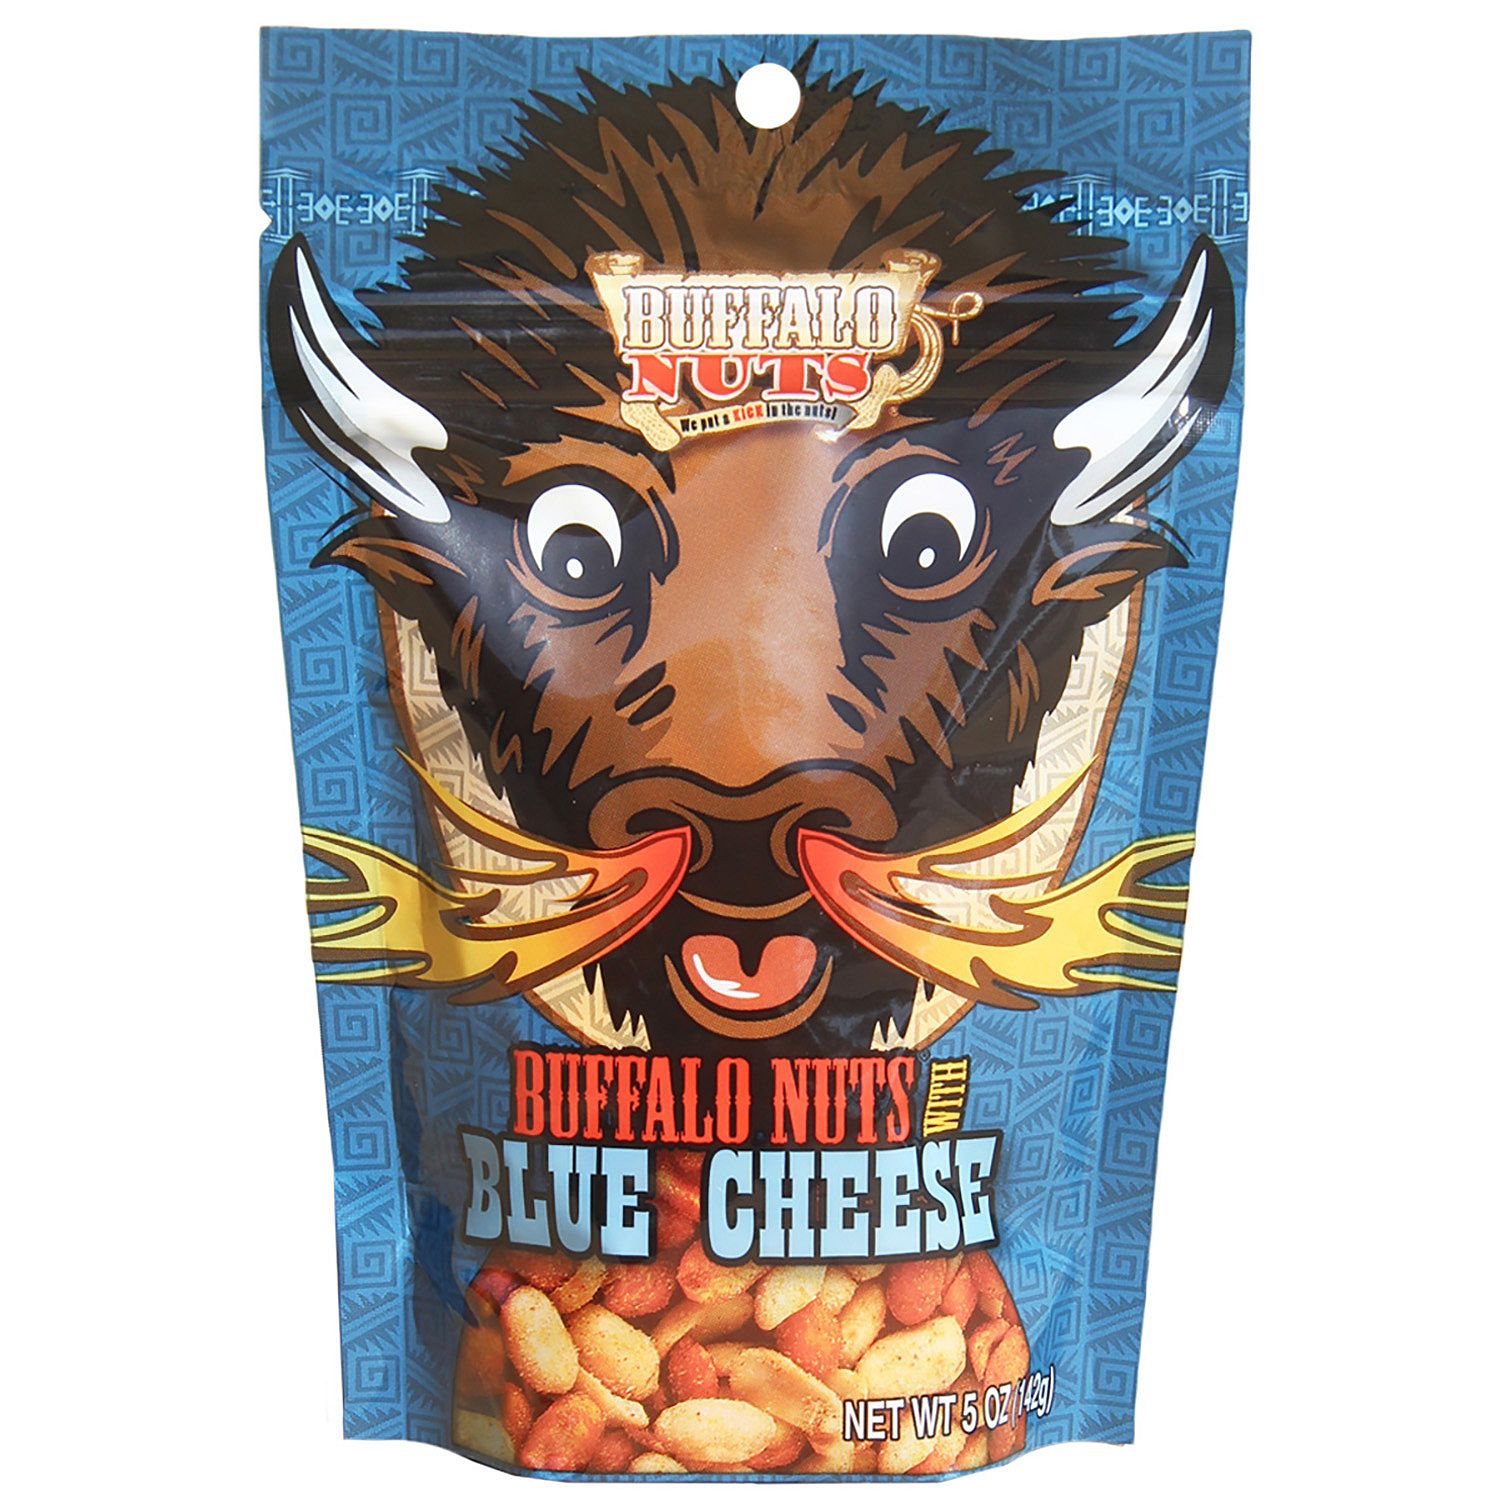 Buffalo Nuts Blue Cheese Variety (5 oz. bags, 12 ct.) by